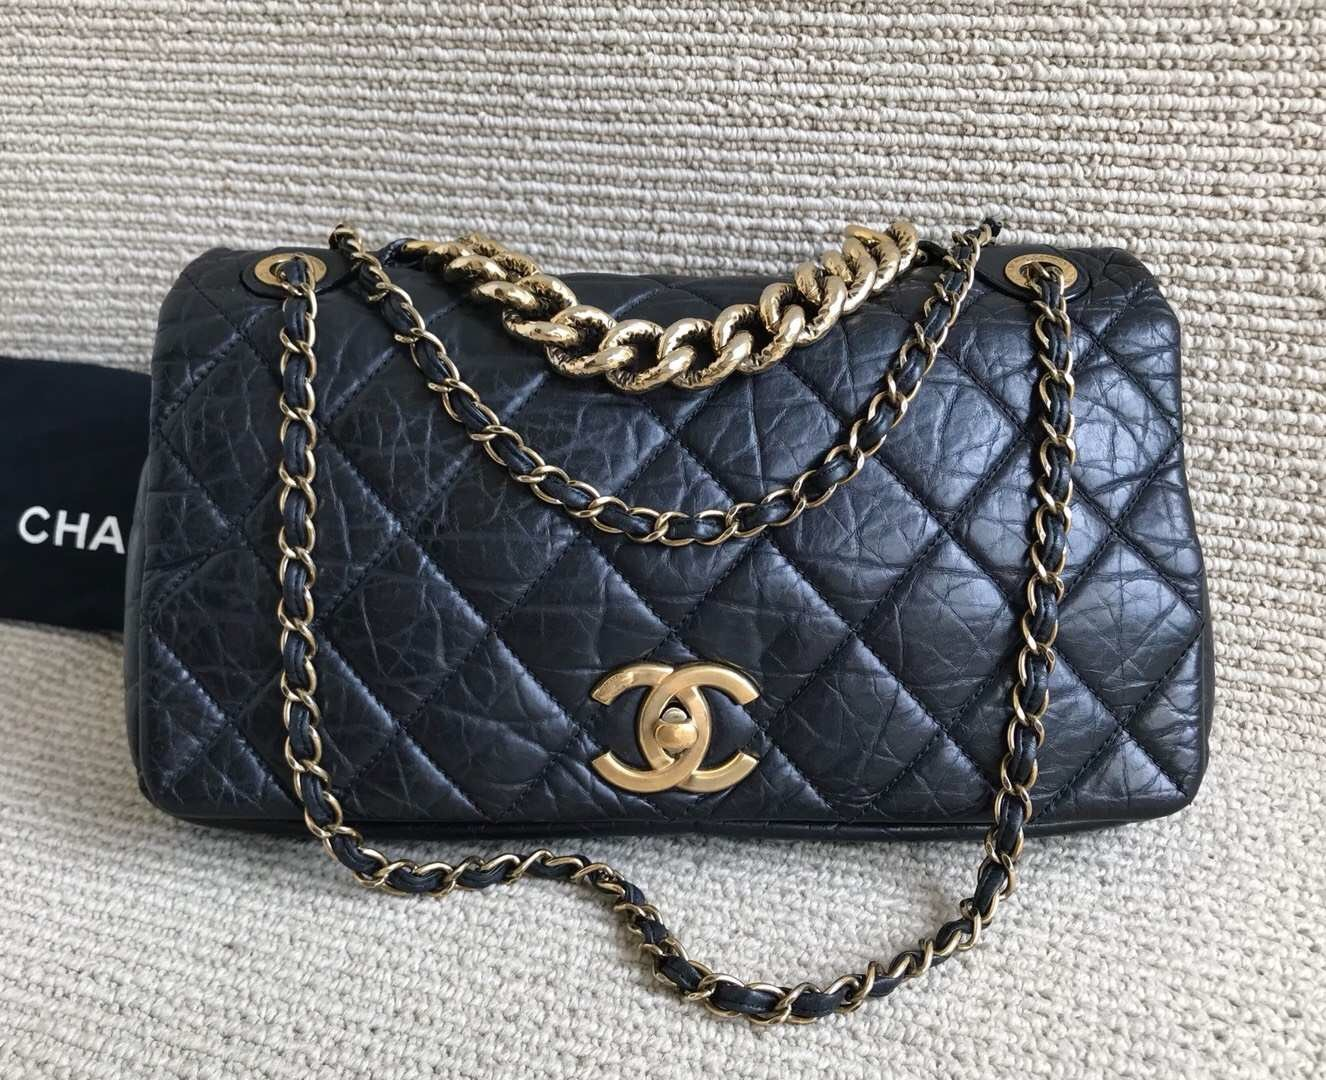 AUTHENTIC CHANEL BLACK QUILTED LEATHER 2-WAY CHAIN FLAP BAG GHW